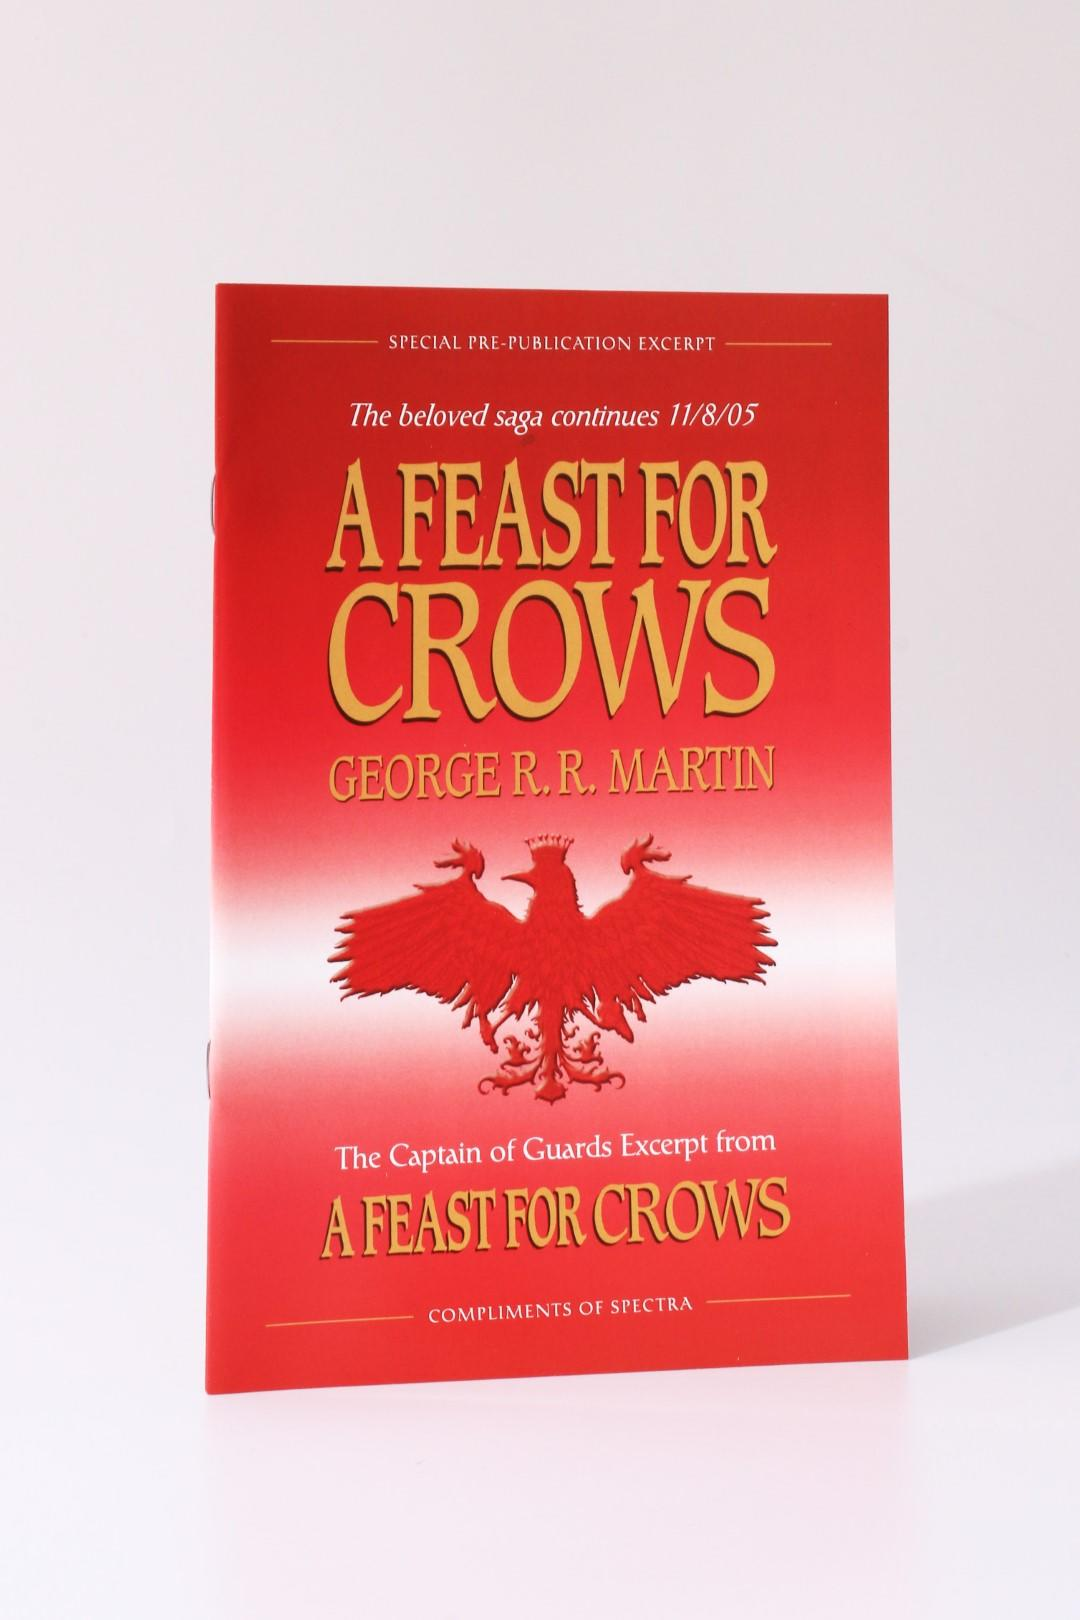 George R.R. Martin - A Feast for Crows: The Captain of the Guards Excerpt - Spectra, 2005, Proof.